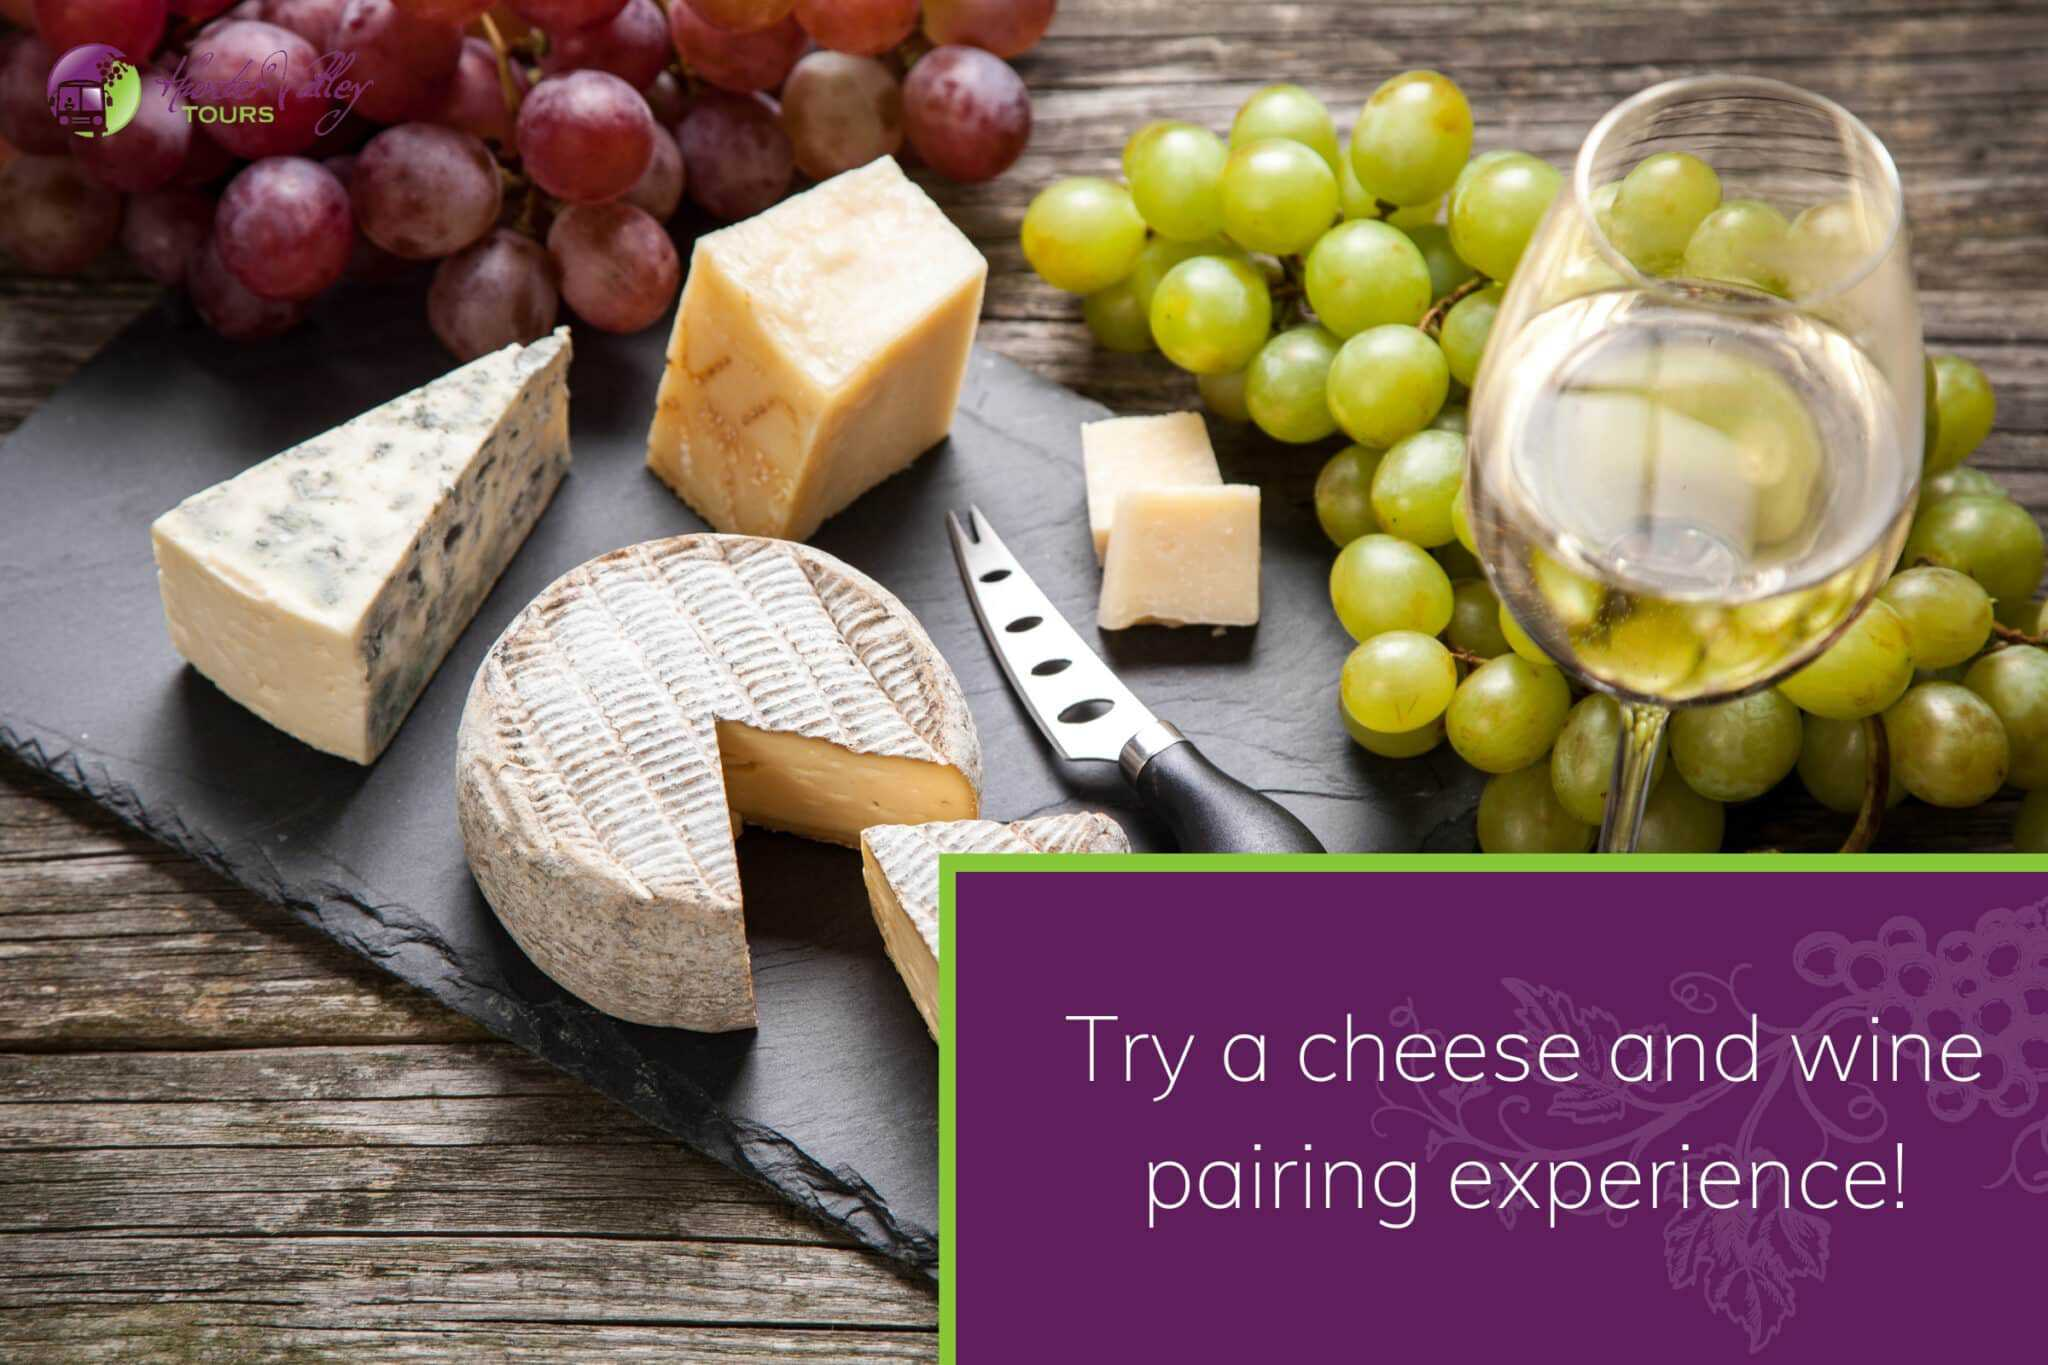 Try a cheese and wine pairing experience!